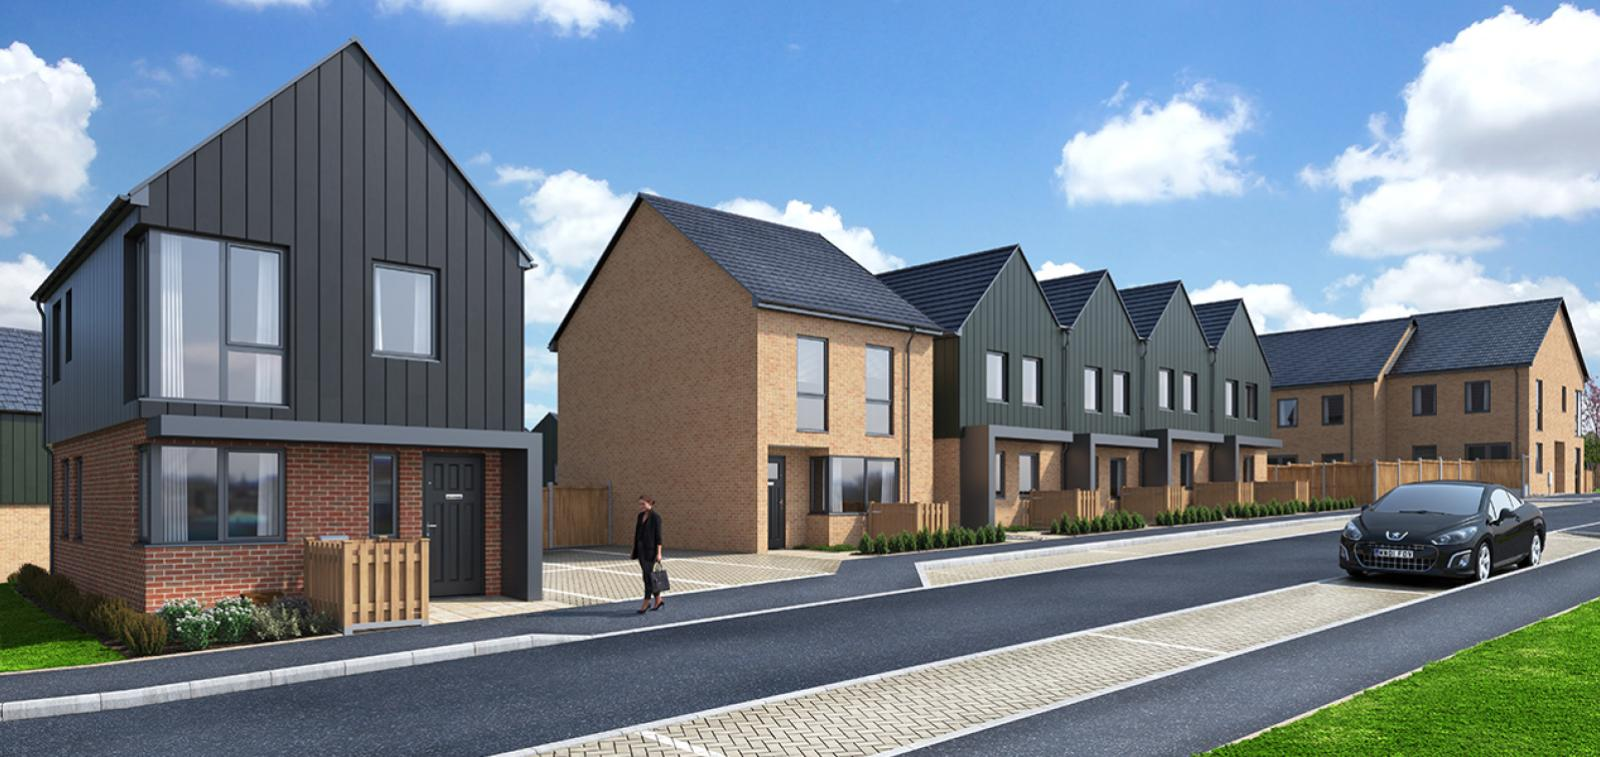 Street scene at our Watling Gate development